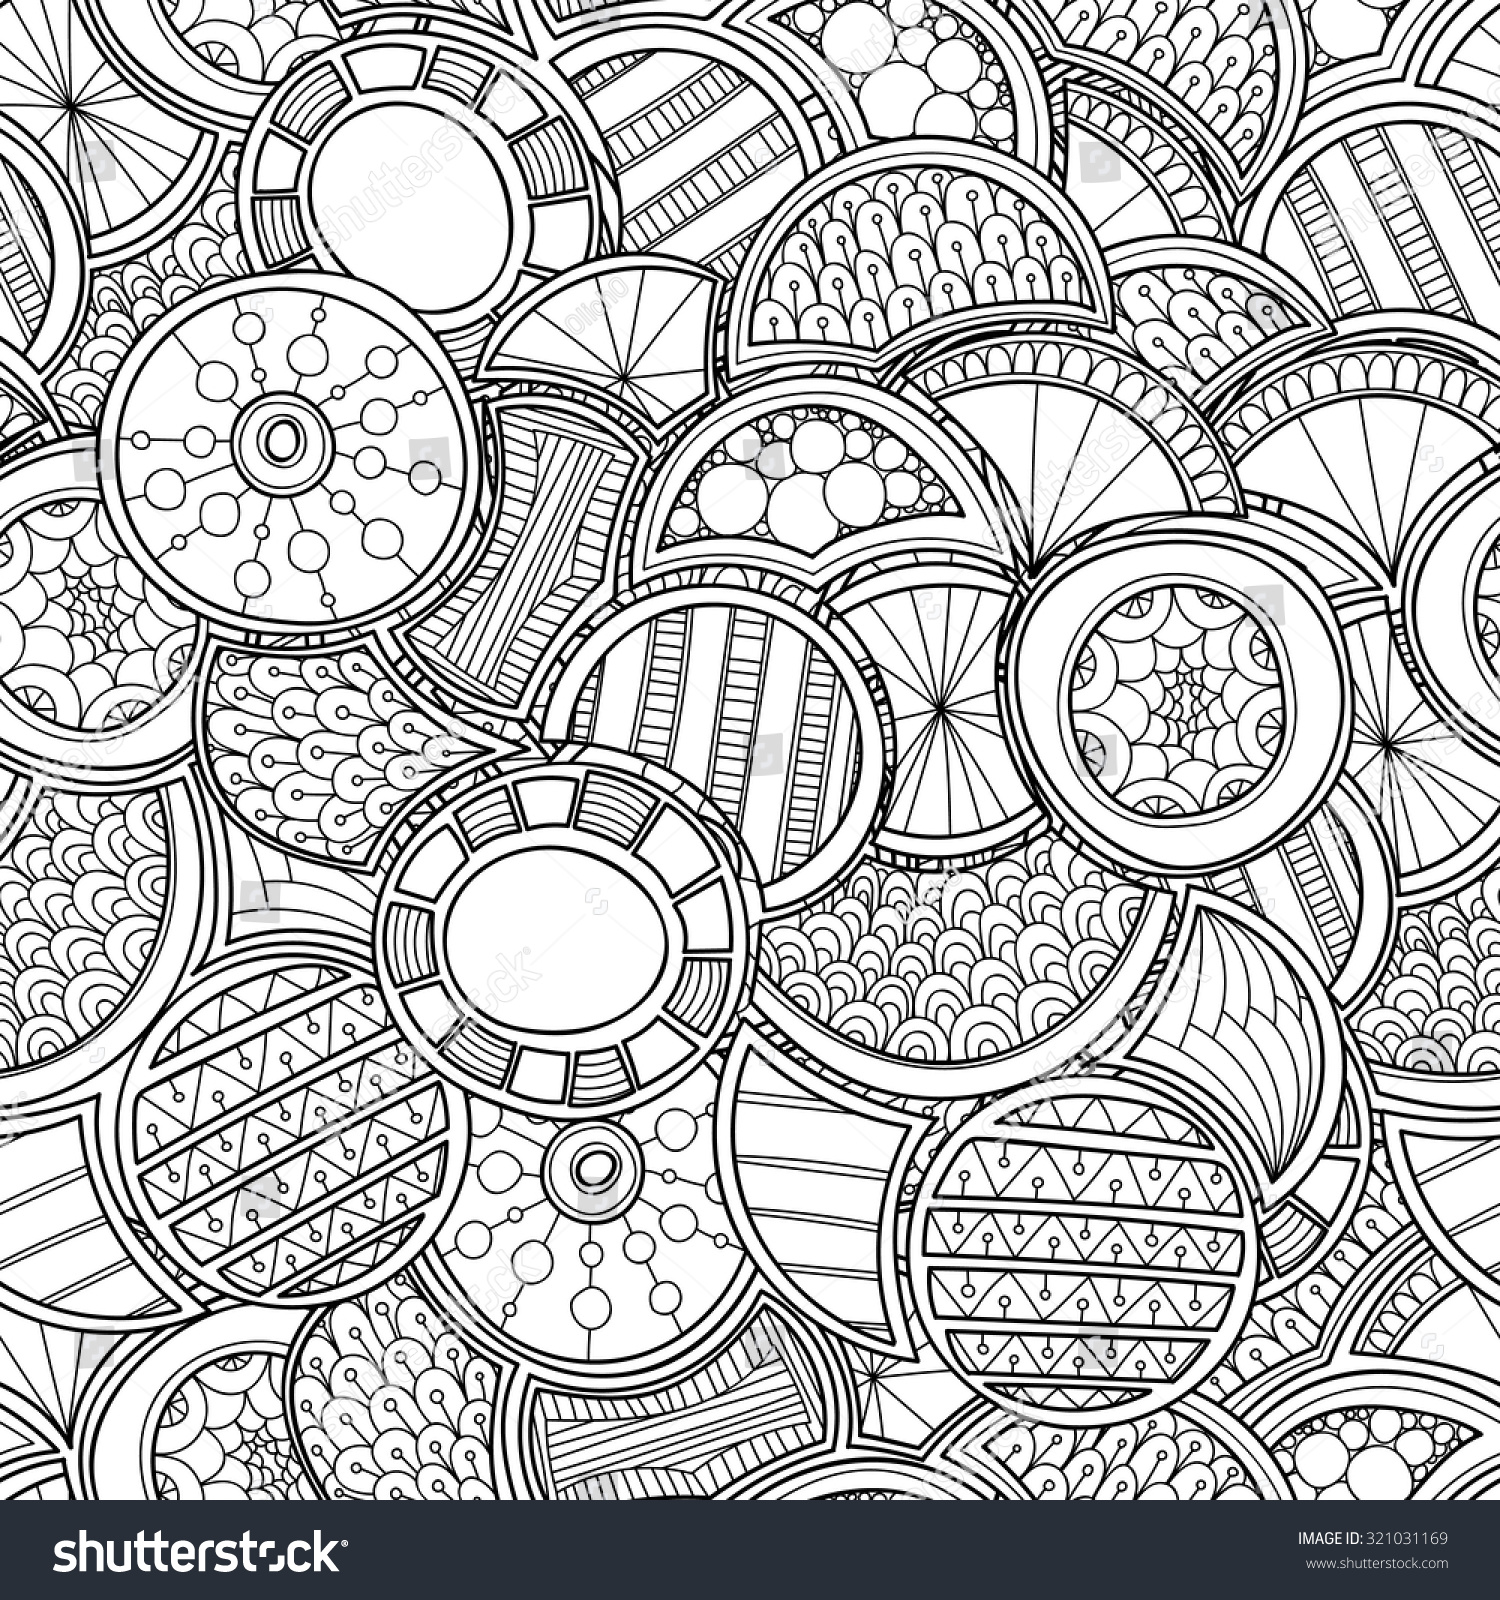 Zentangle Circles Seamless Pattern Doodle Black Stock Vector ...